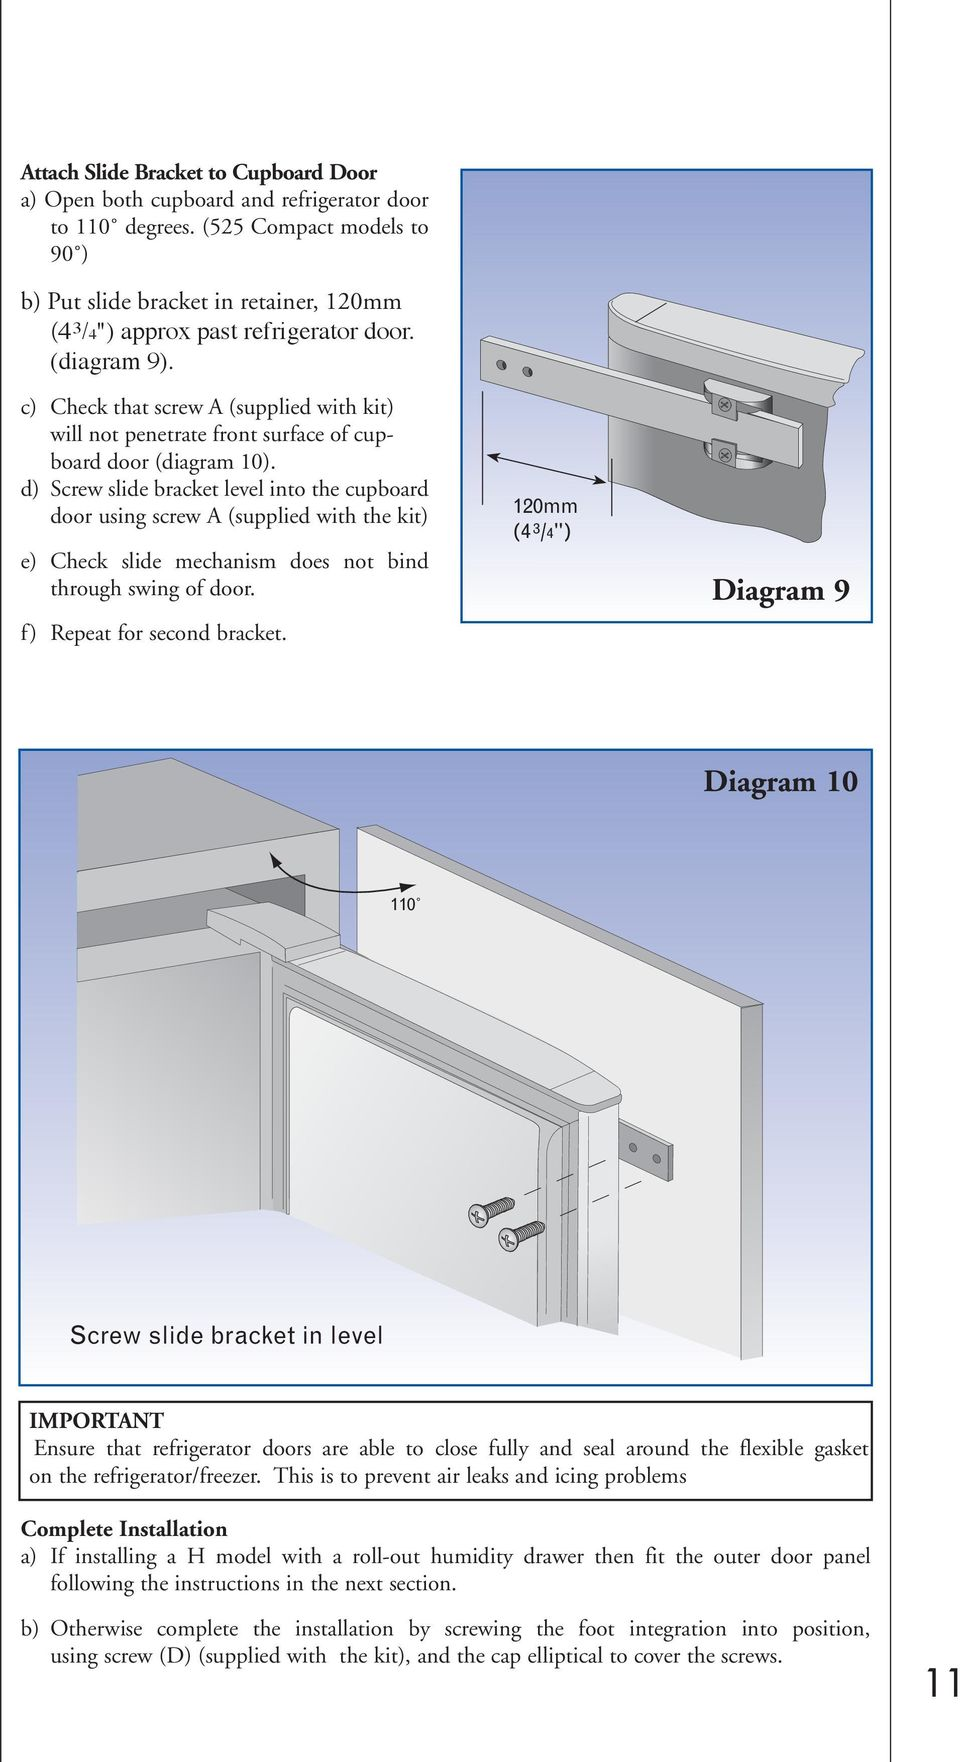 c) Check that screw A (supplied with kit) will not penetrate front surface of cupboard door (diagram 10).